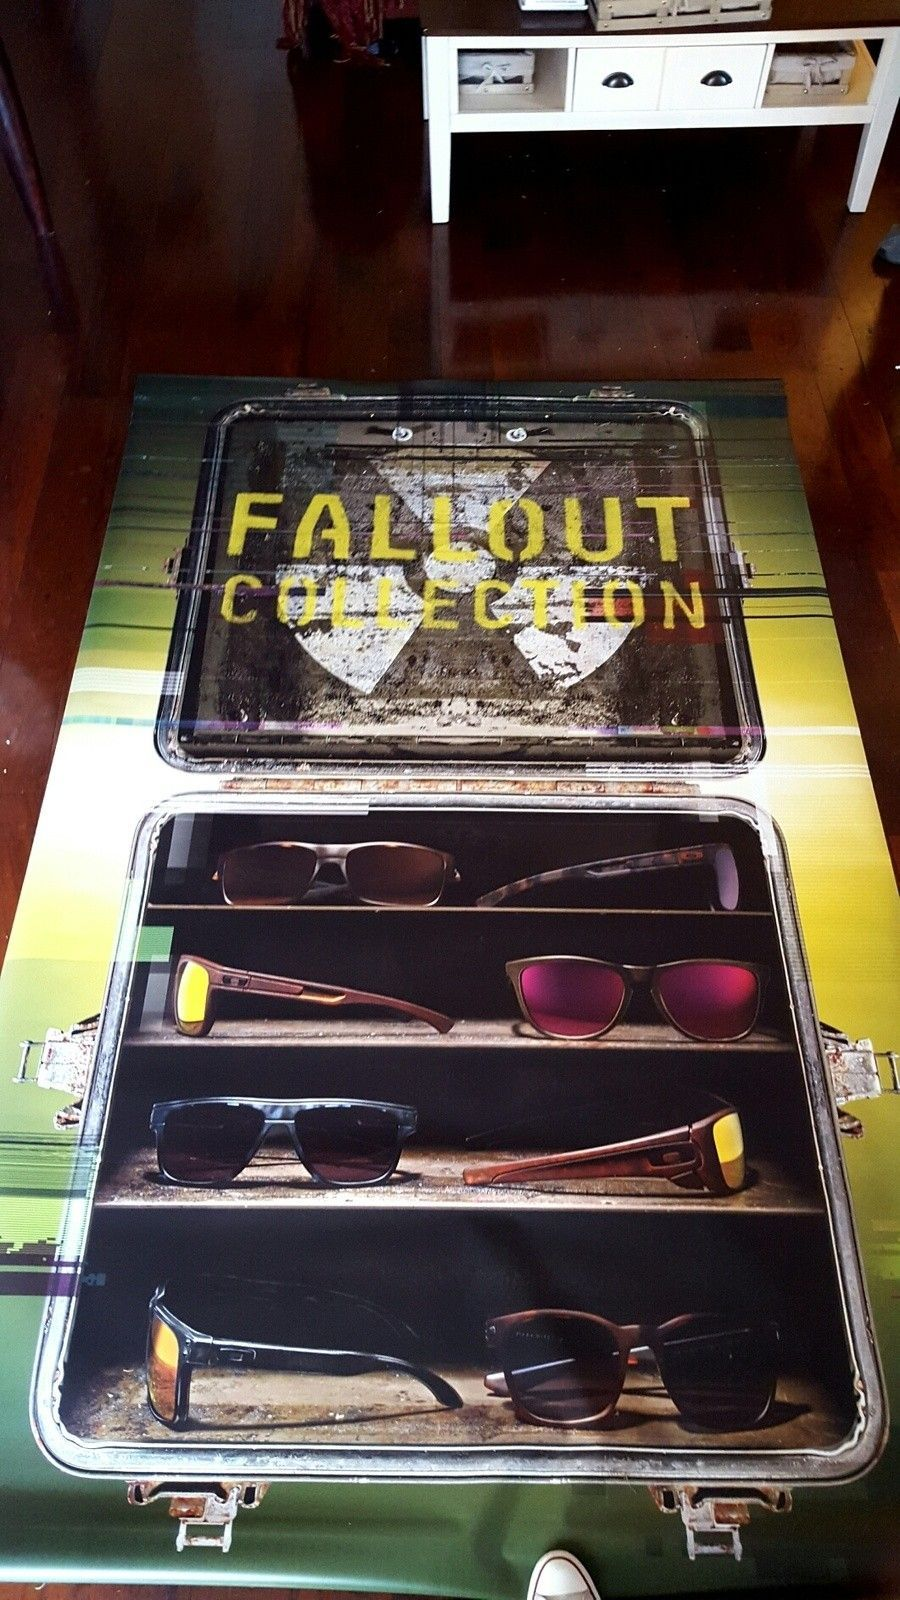 3 Large Vinyl Window Banners. Fallout & Carbon Blade Ferrari - 45B1xBE.jpg